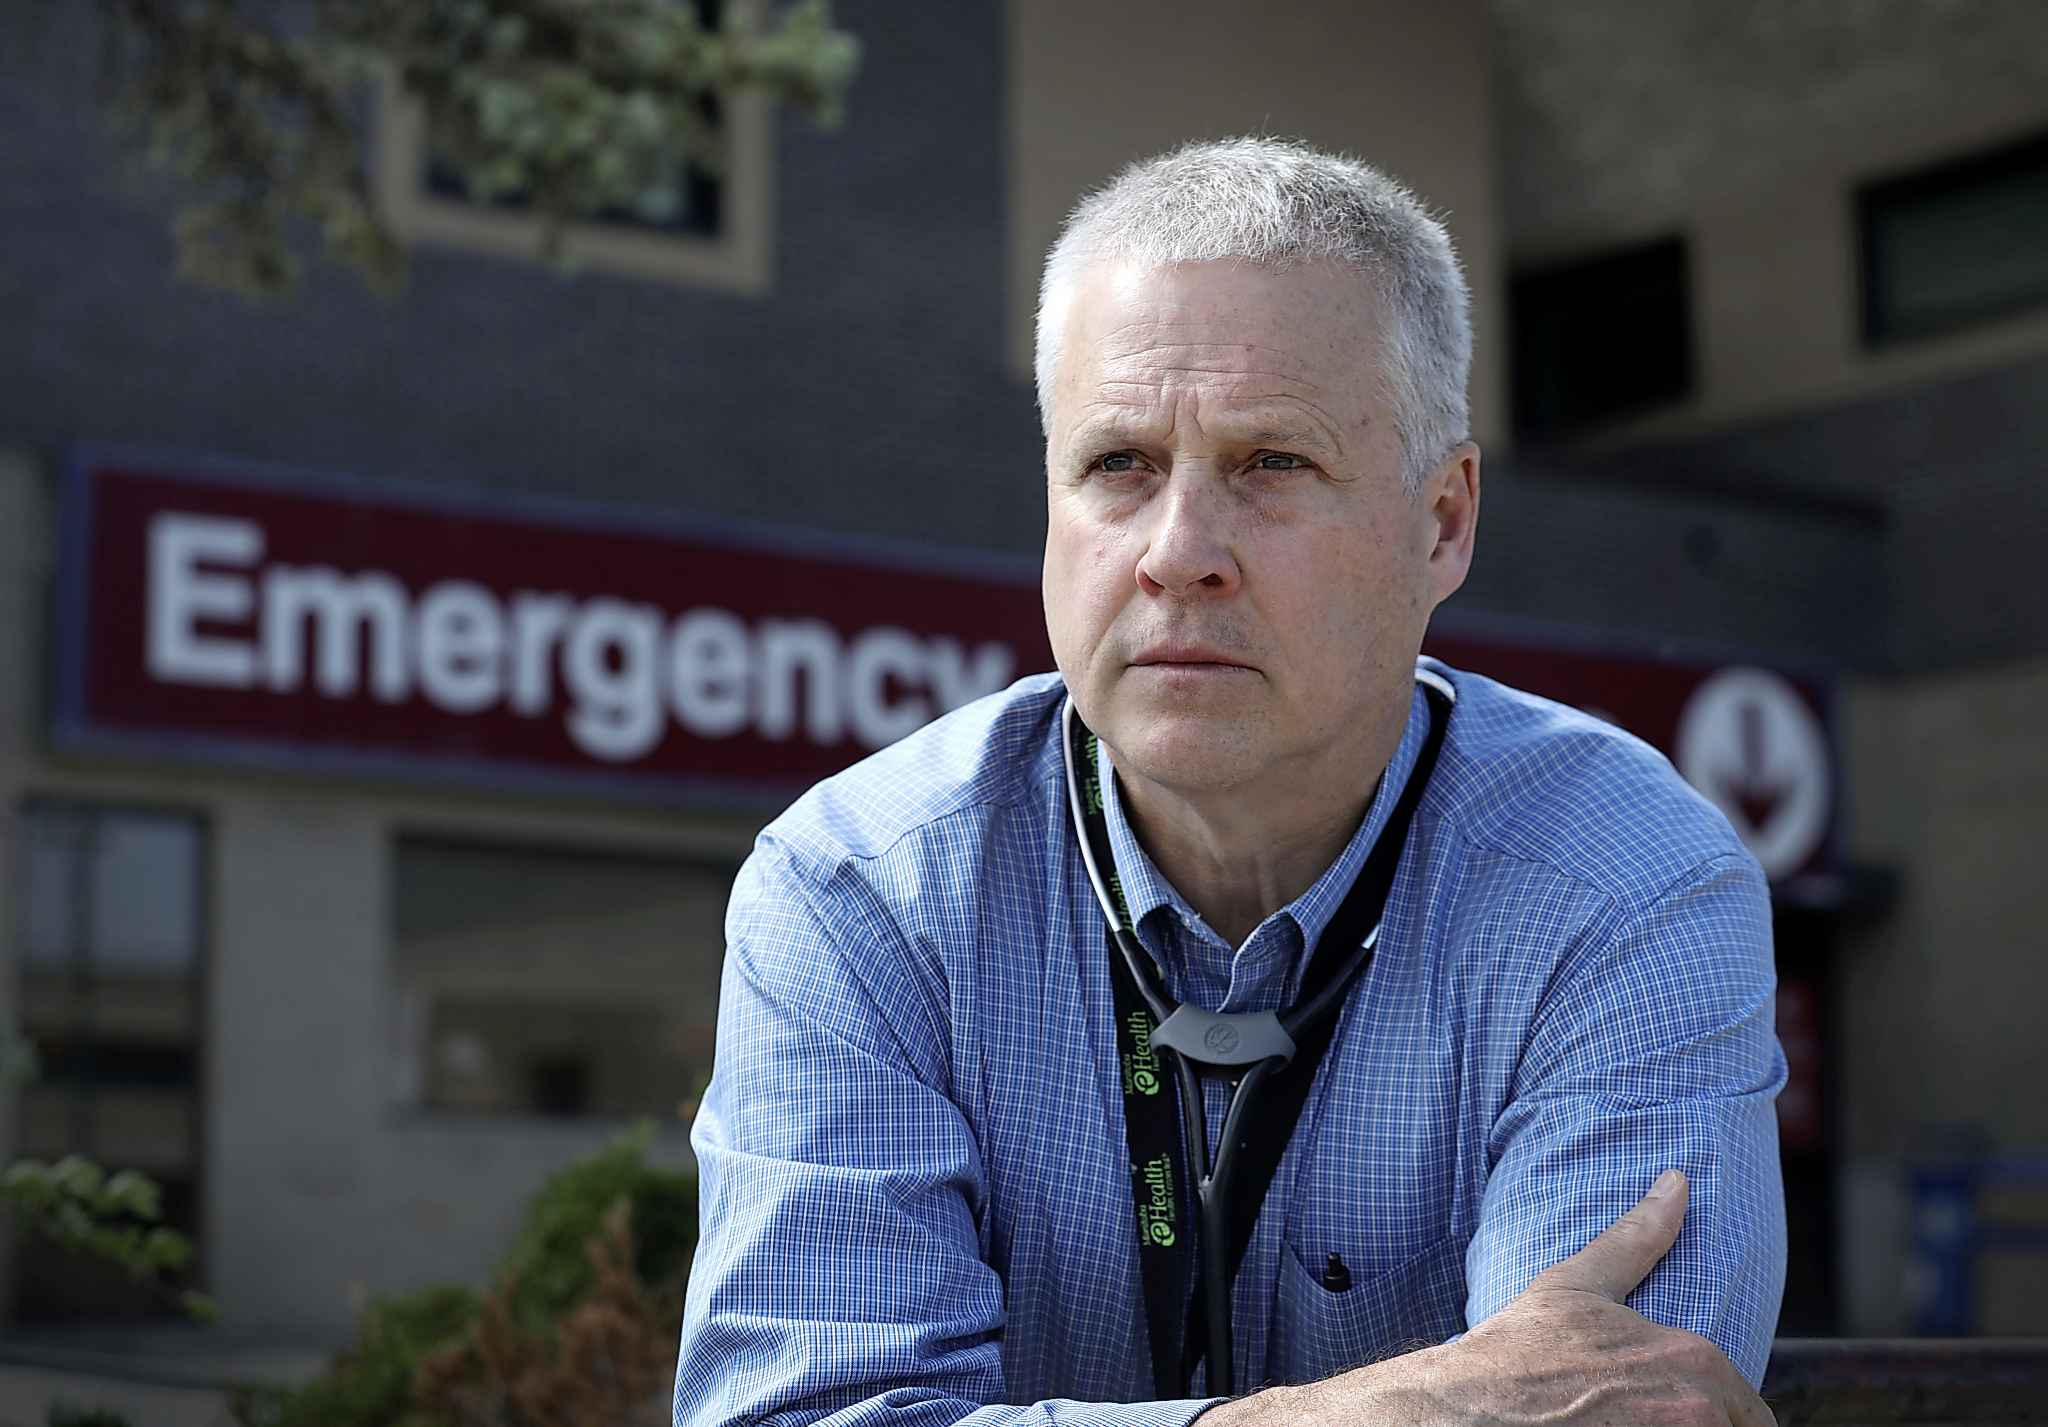 St. Boniface ER Paul Doucet said staff were at 'a critical state in the emergency department' on Wednesday morning.